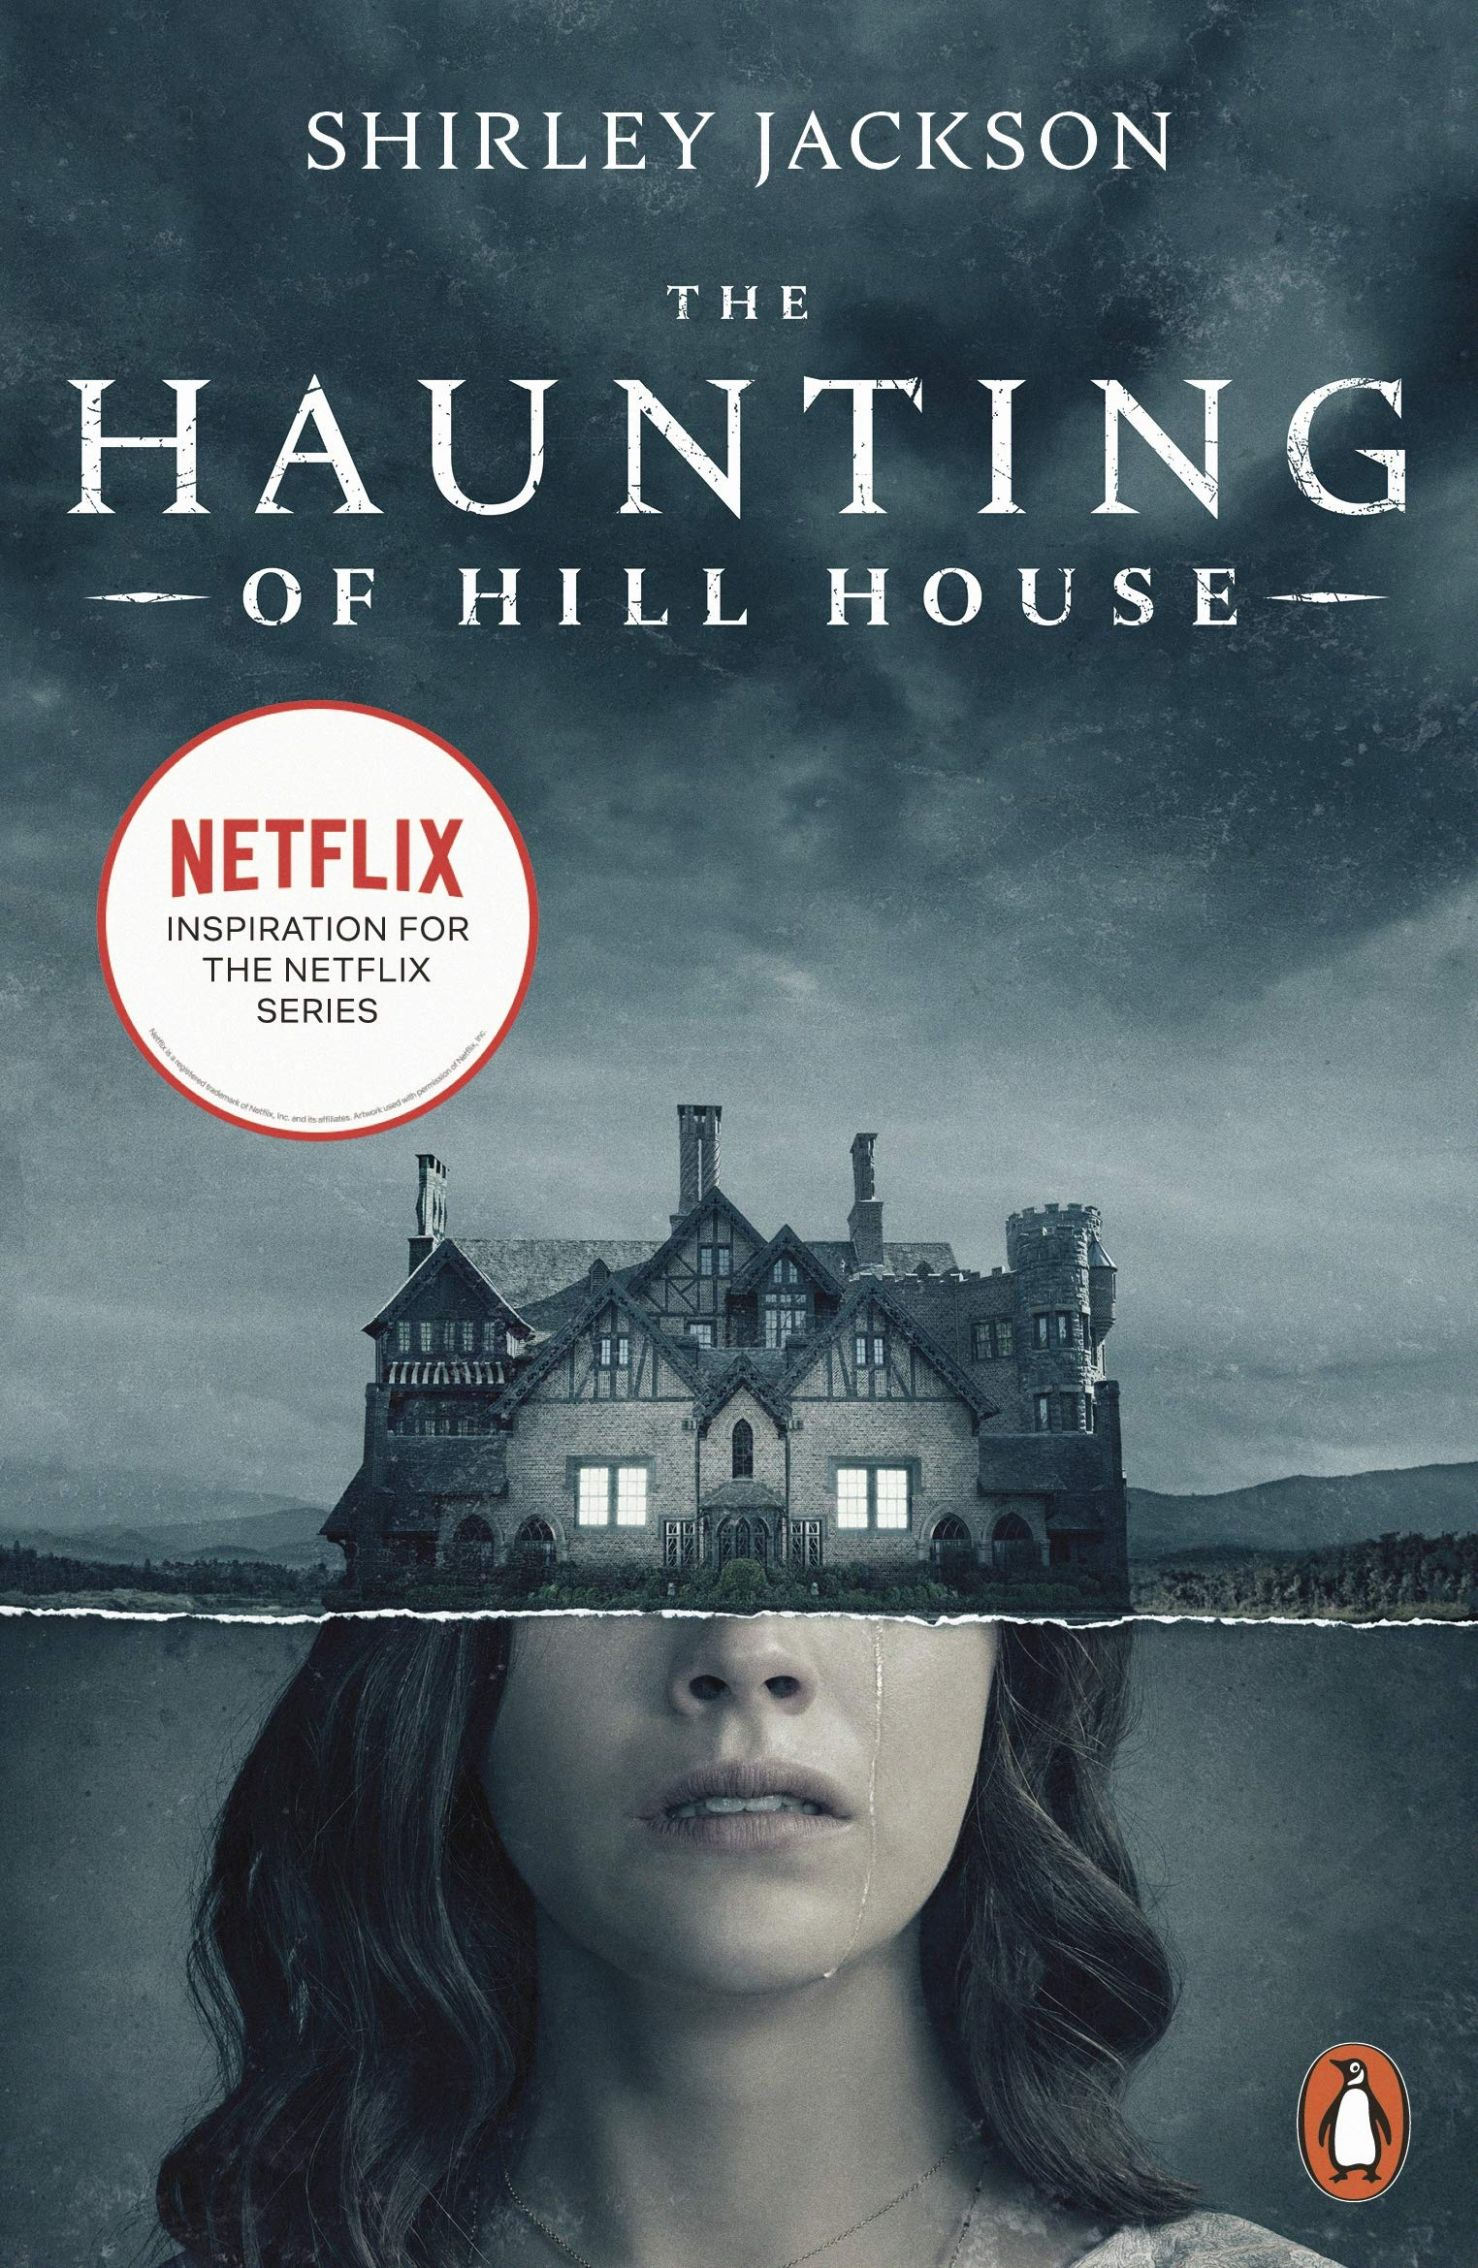 The Haunting of Hill House: Now the Inspiration for a New Netflix ..